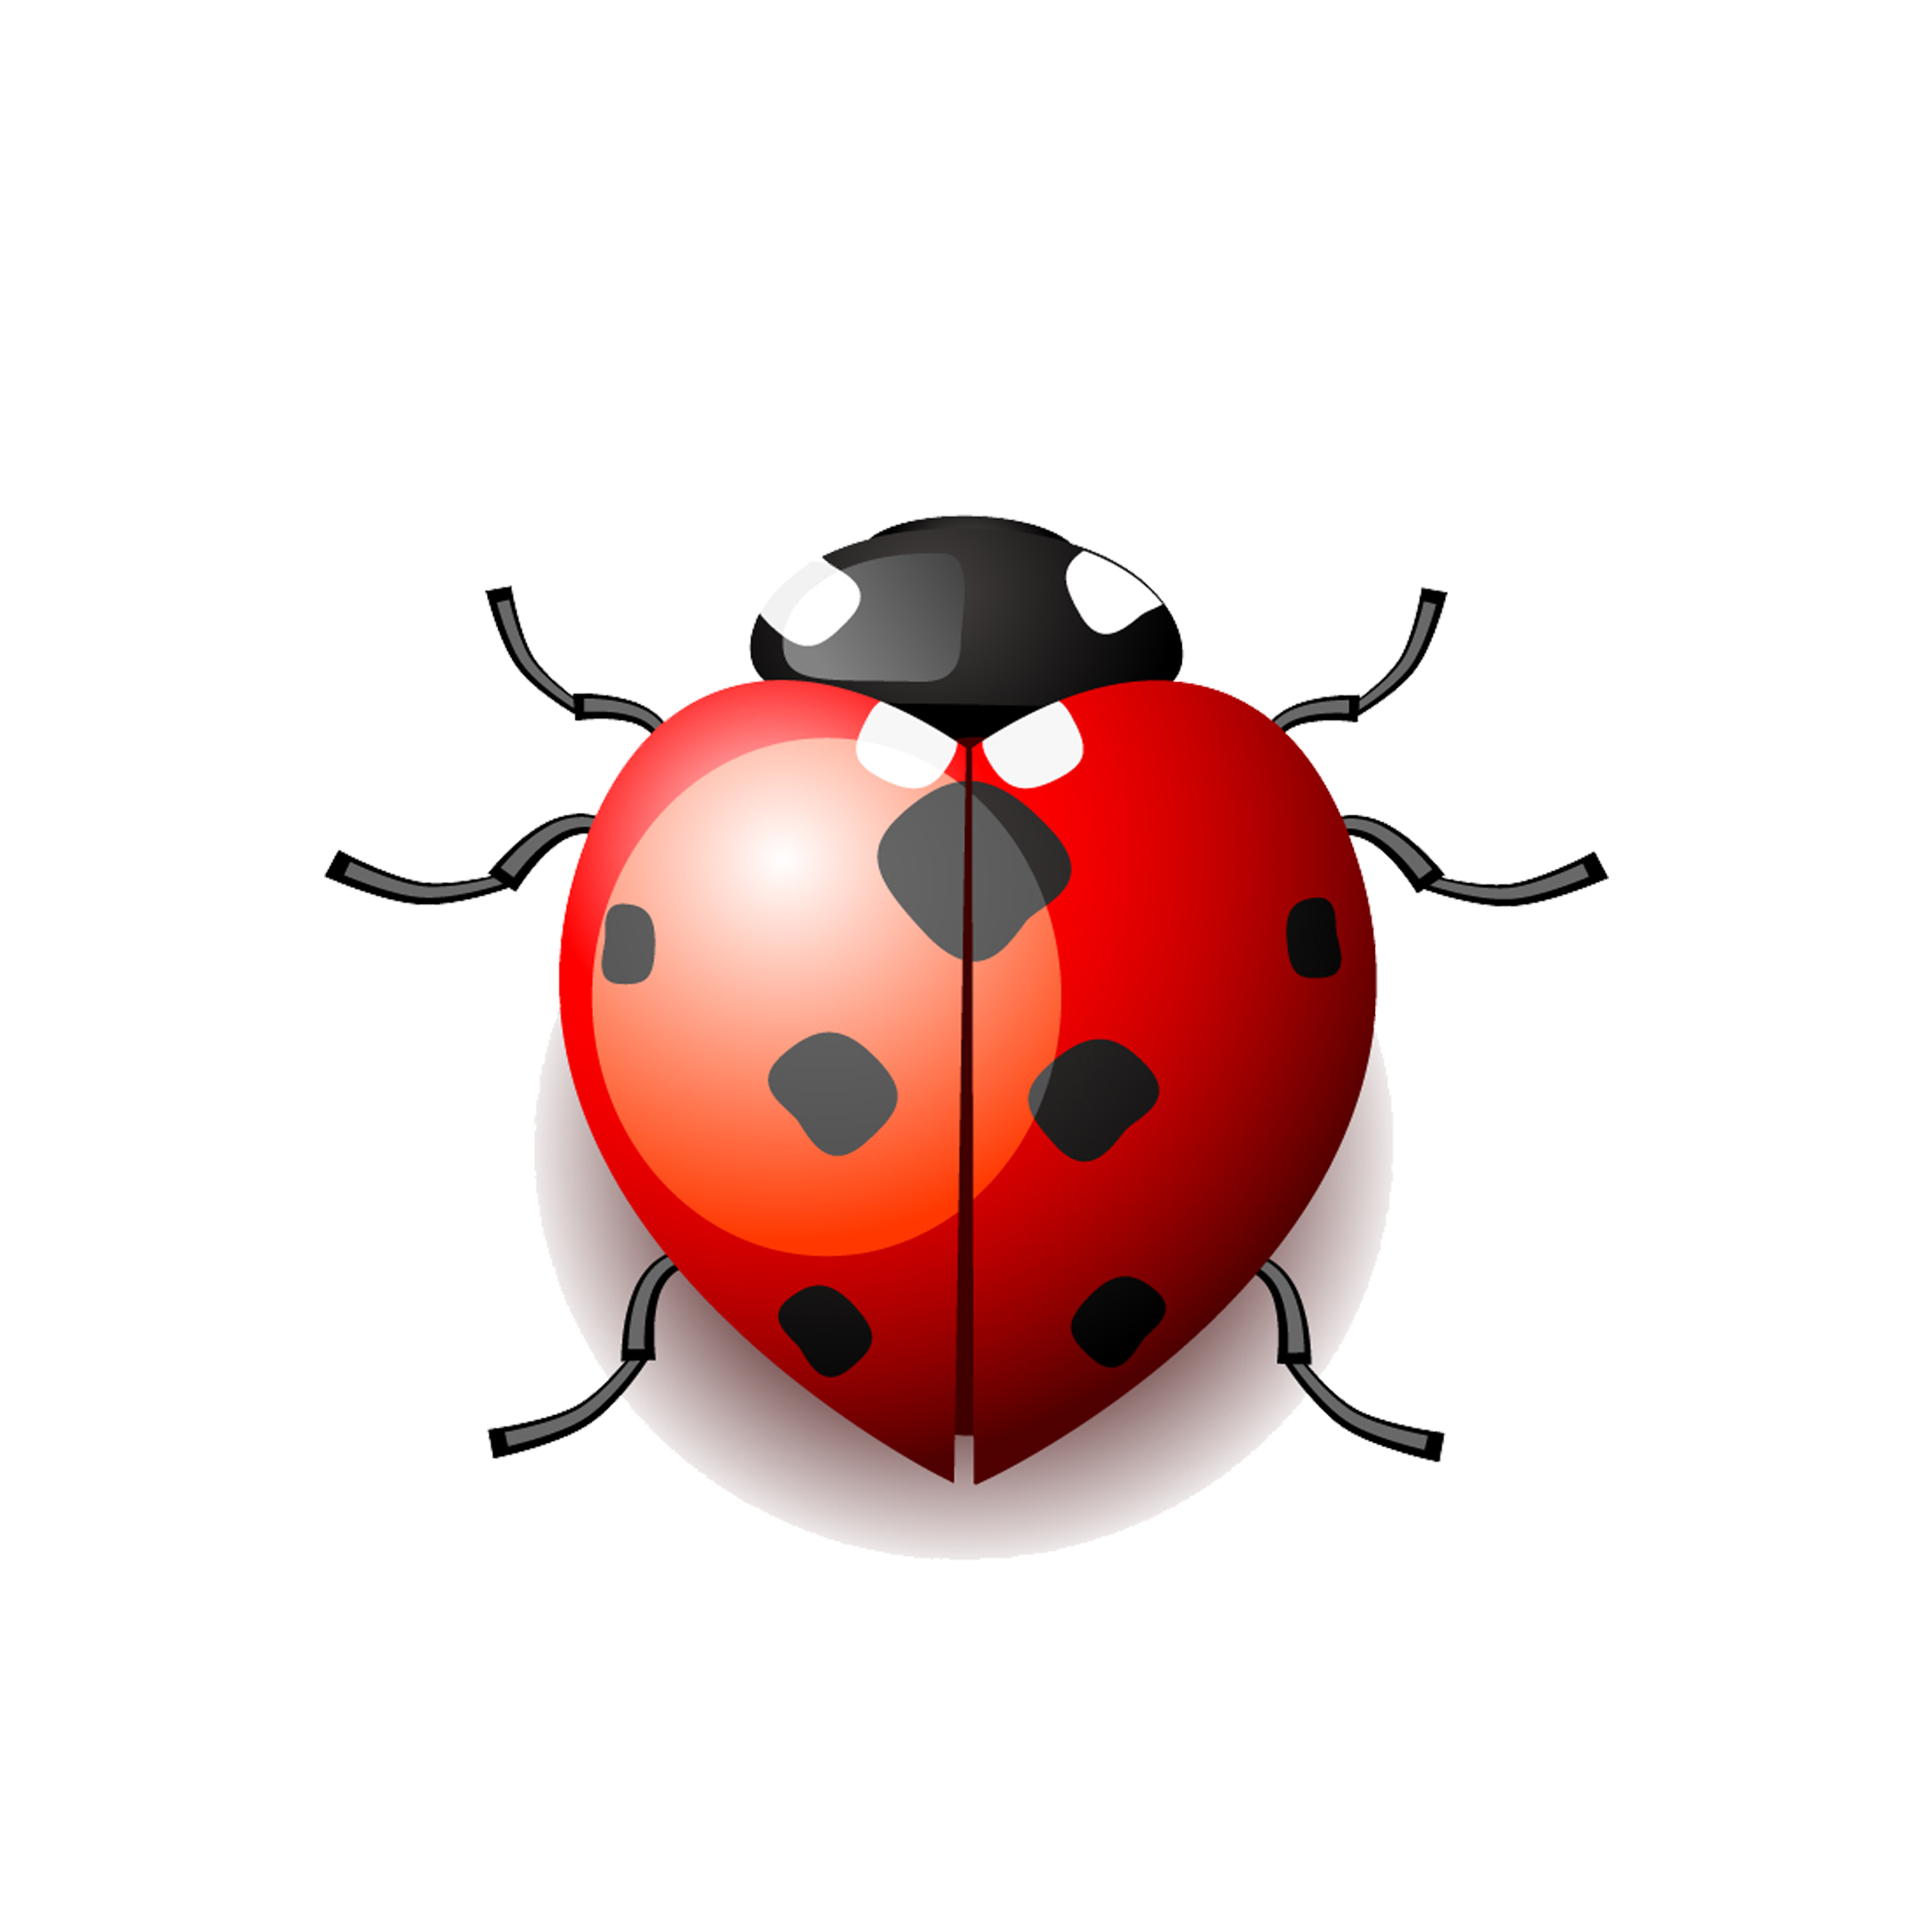 Drawing insects ladybird. Cartoon clip art ladybug